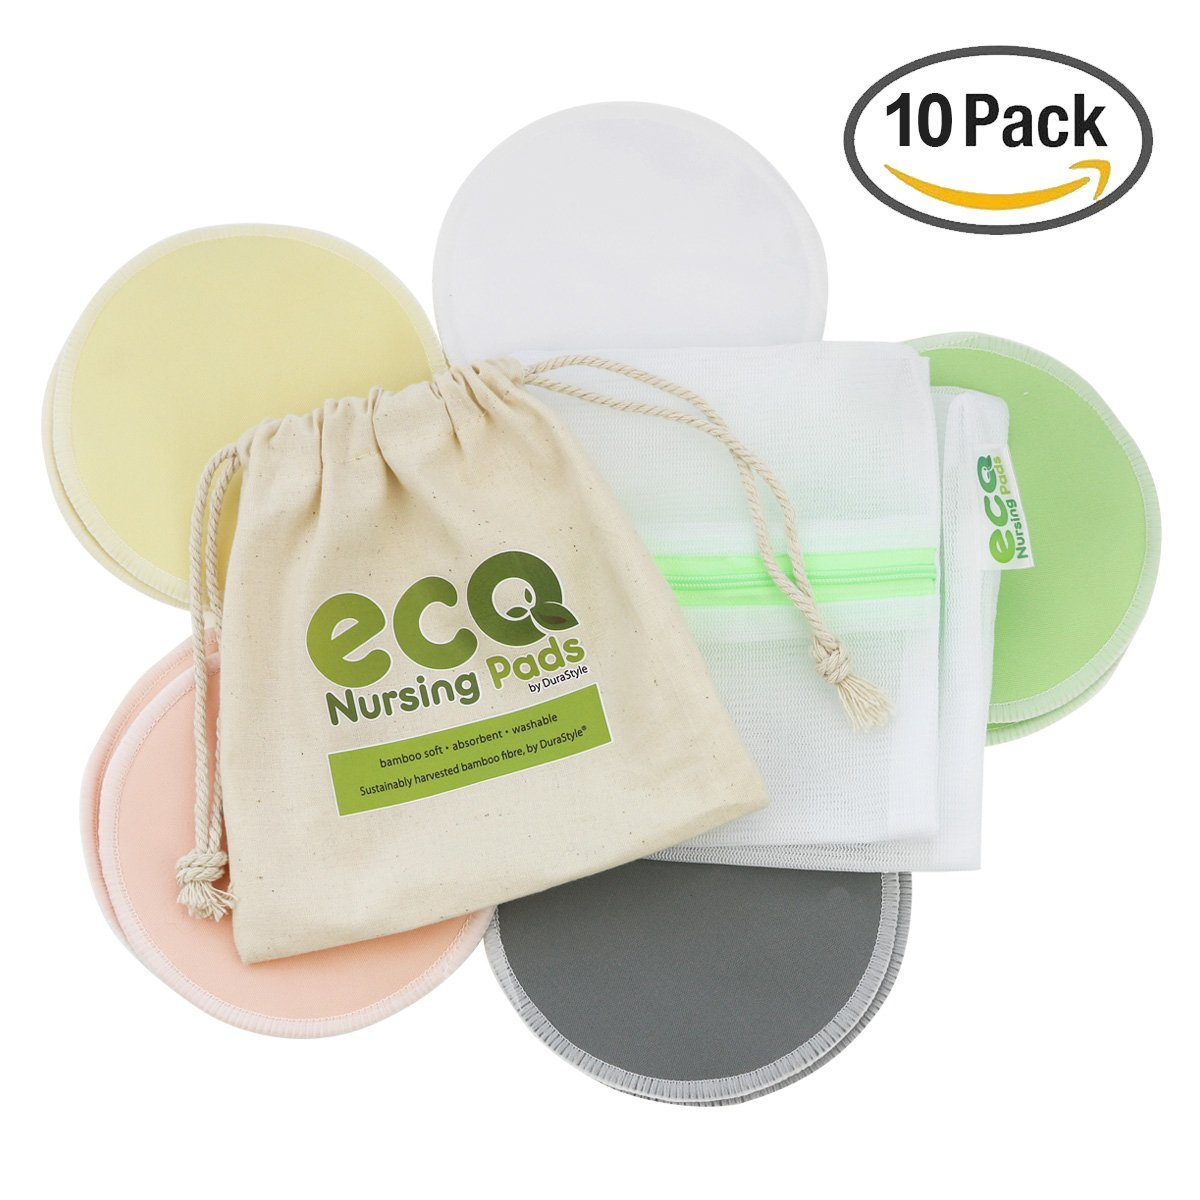 Washable Reusable Eco Nursing Pads™ - Ultra Soft Organic Bamboo - Laundry & Travel Bag Included DuraStyle